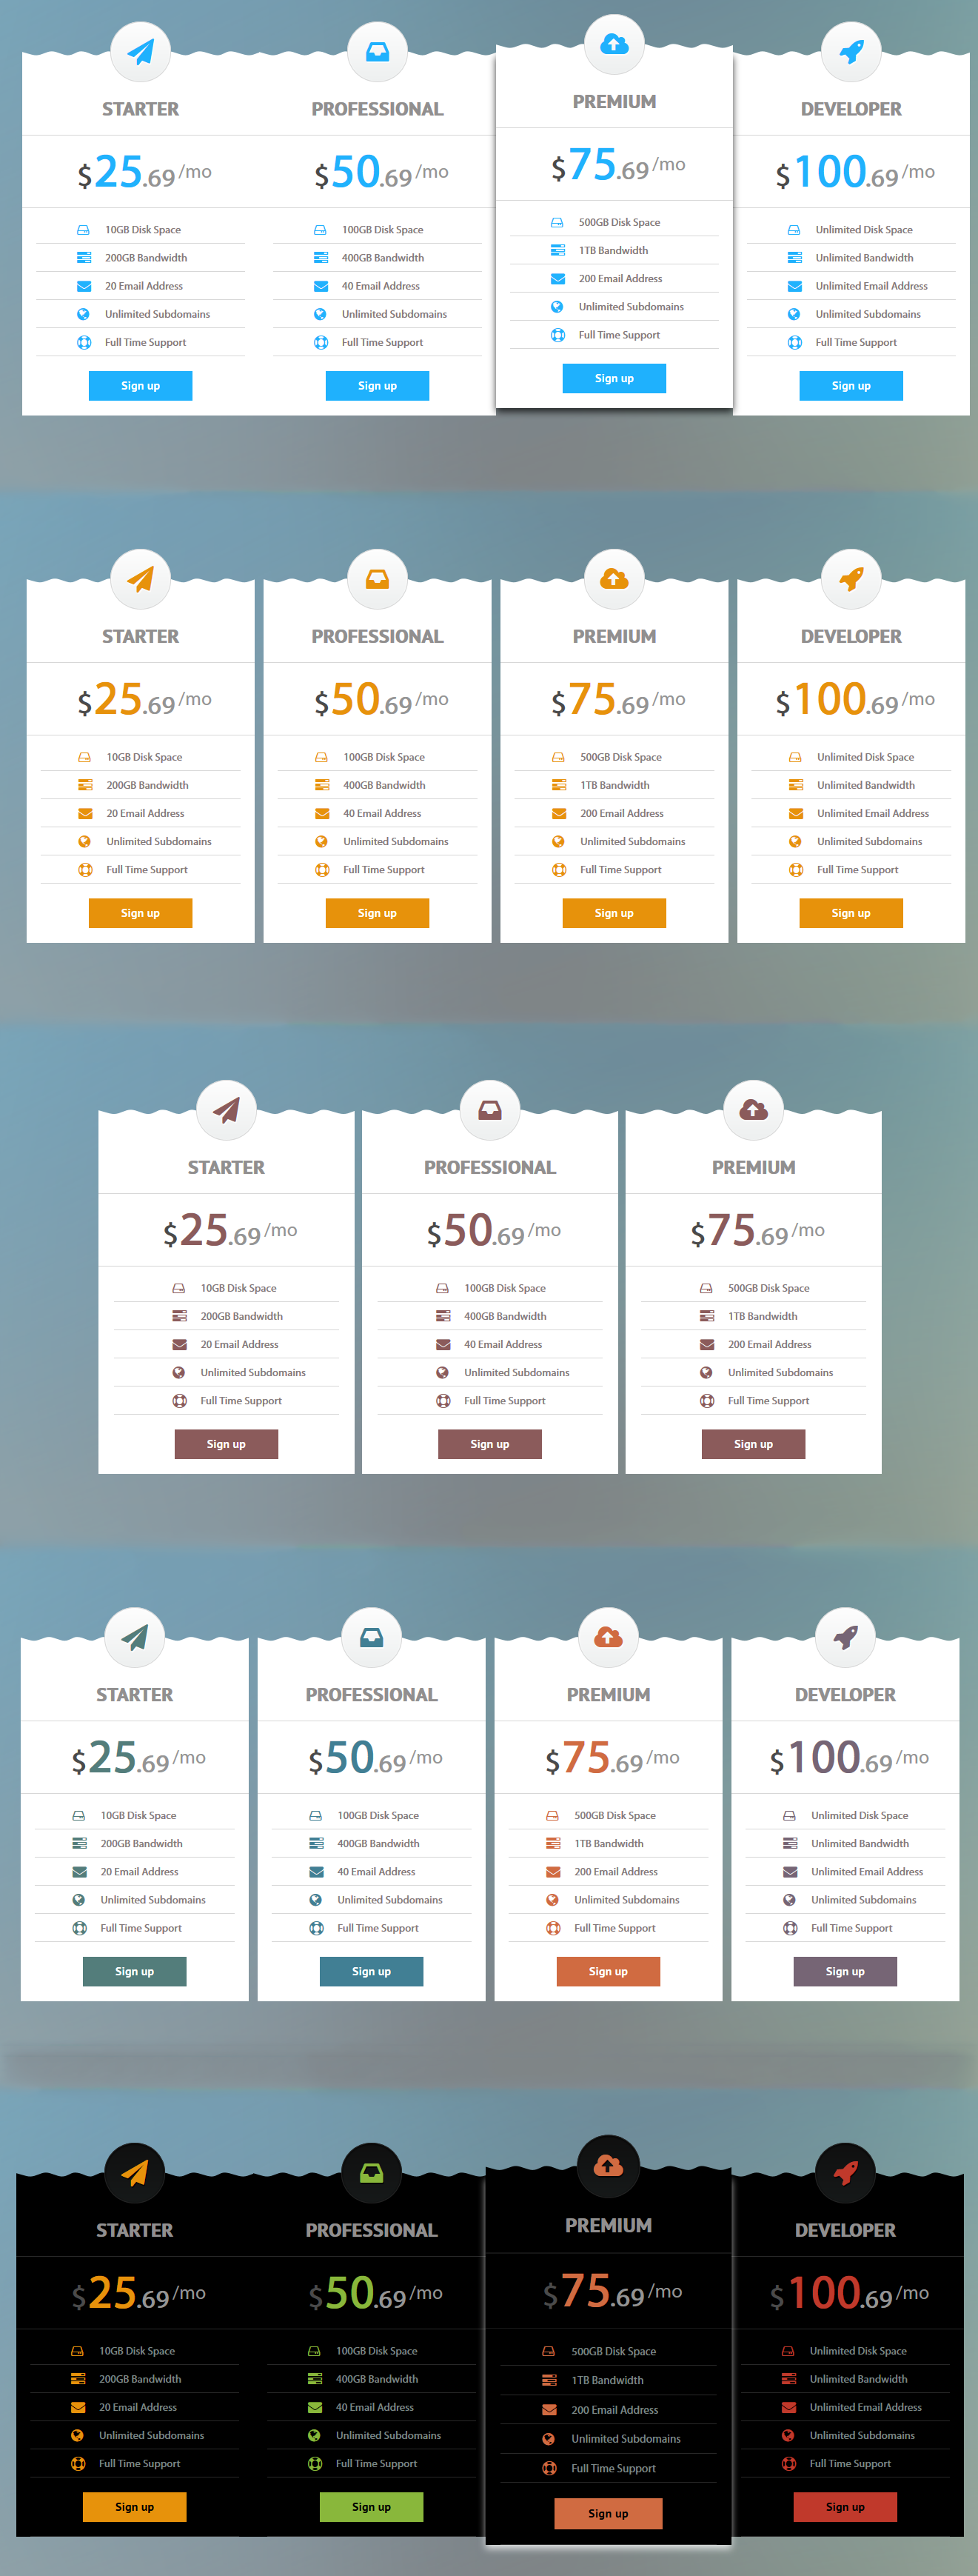 Change bootstrap table hover color phpsourcecode net for Bootstrap table row color